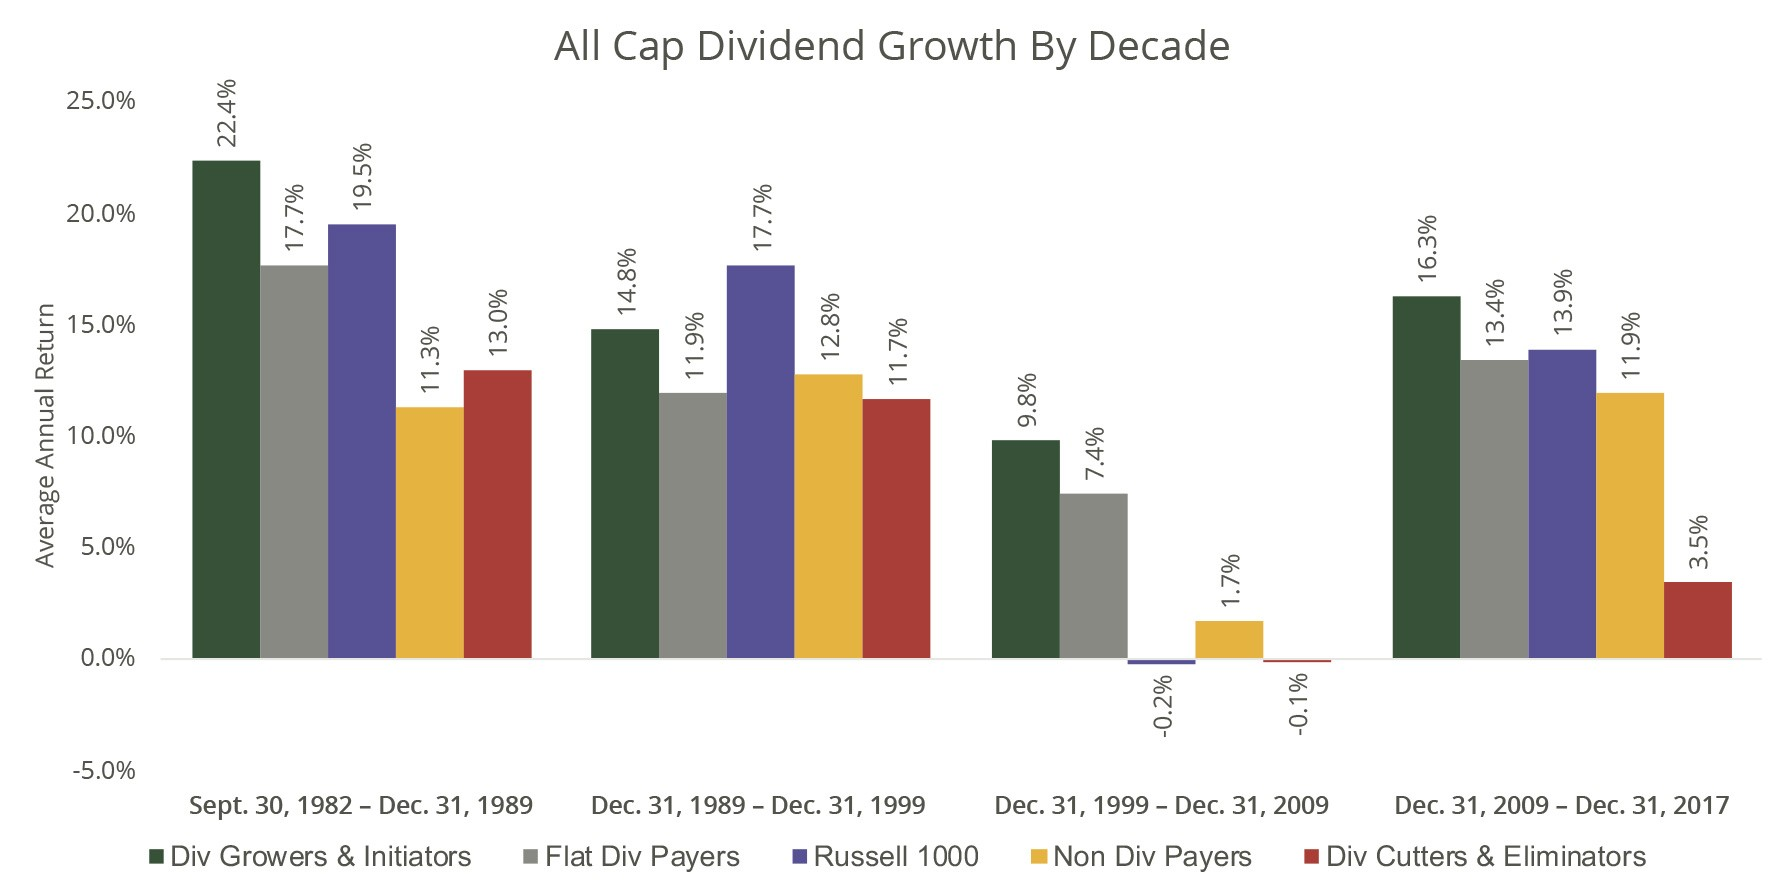 Domestic All Cap Dividend Growth by Decade